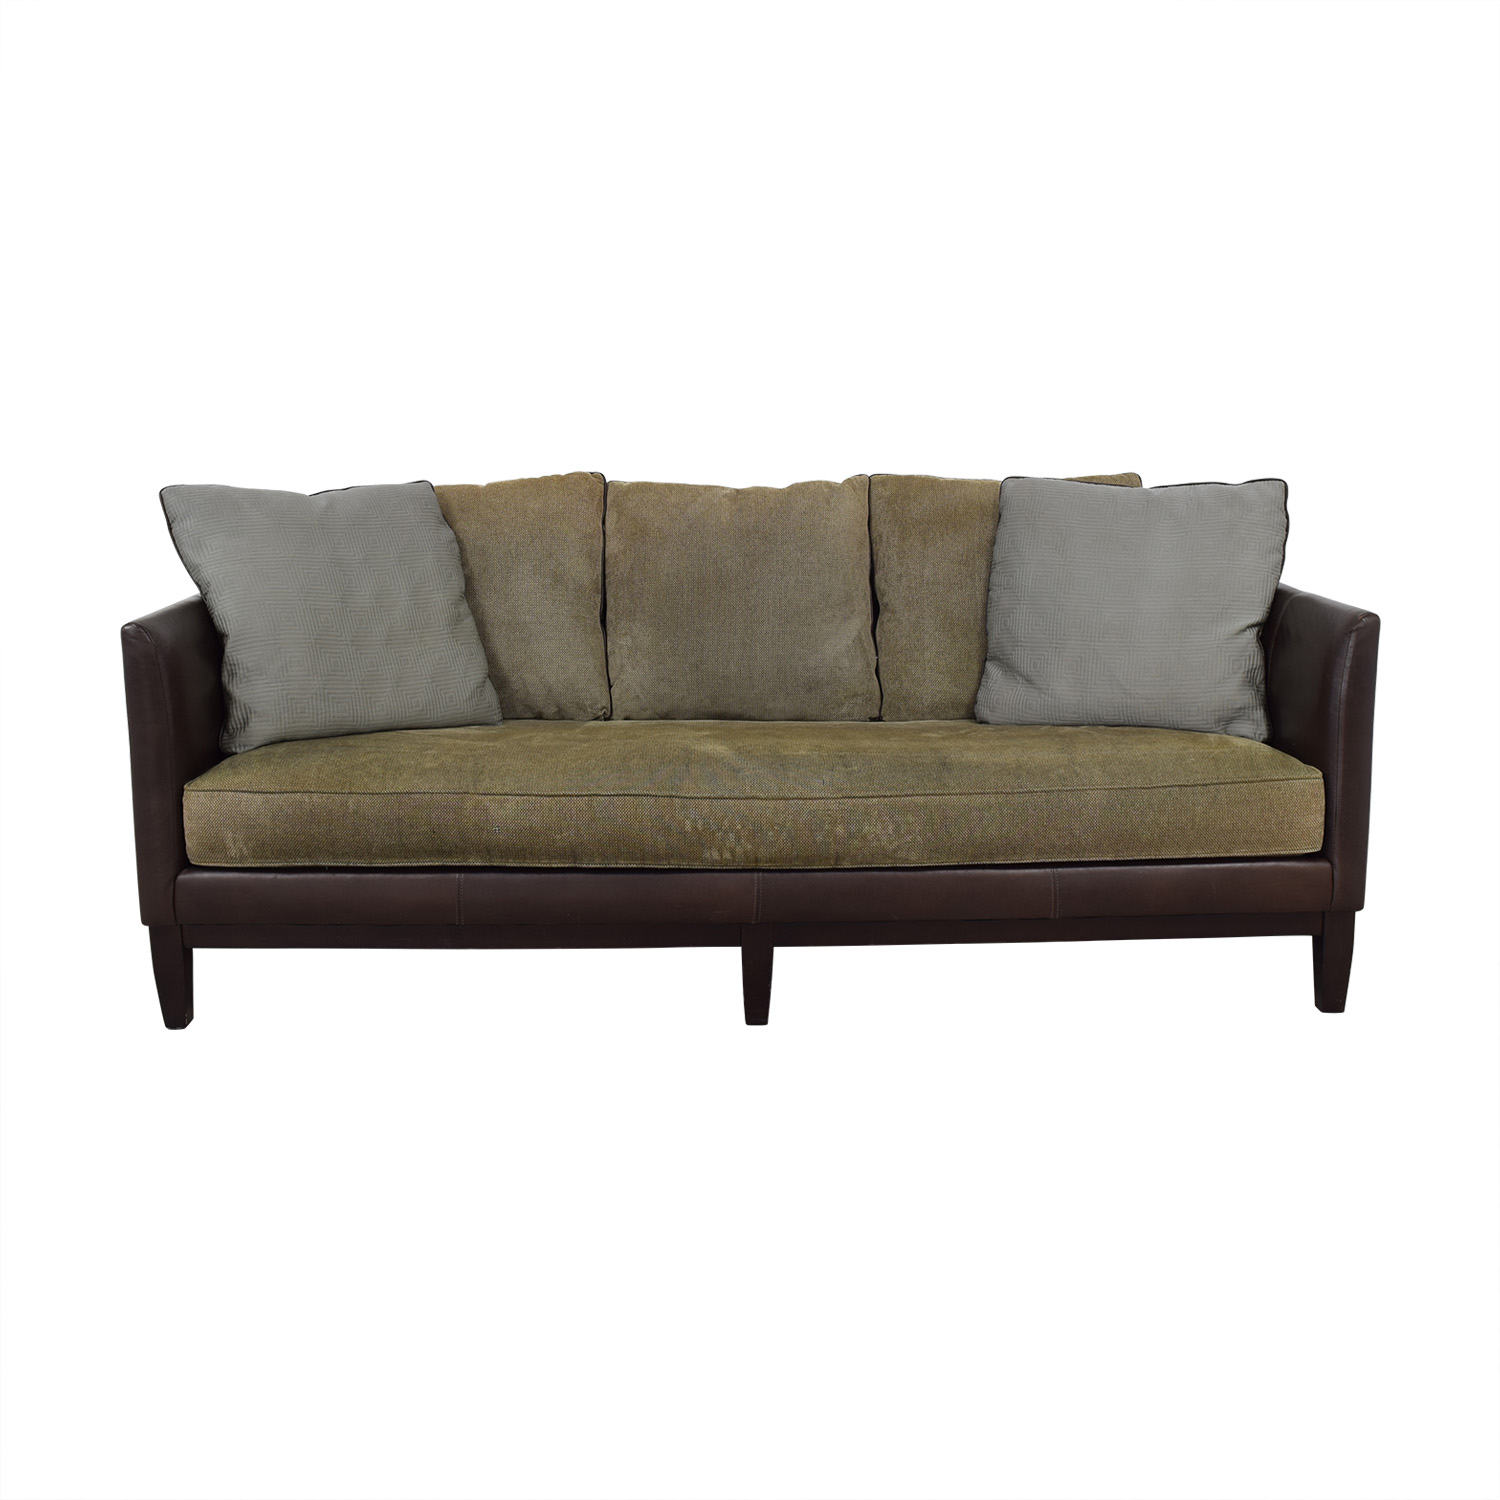 Bernhardt Bernhardt Single Cushion Sofa second hand